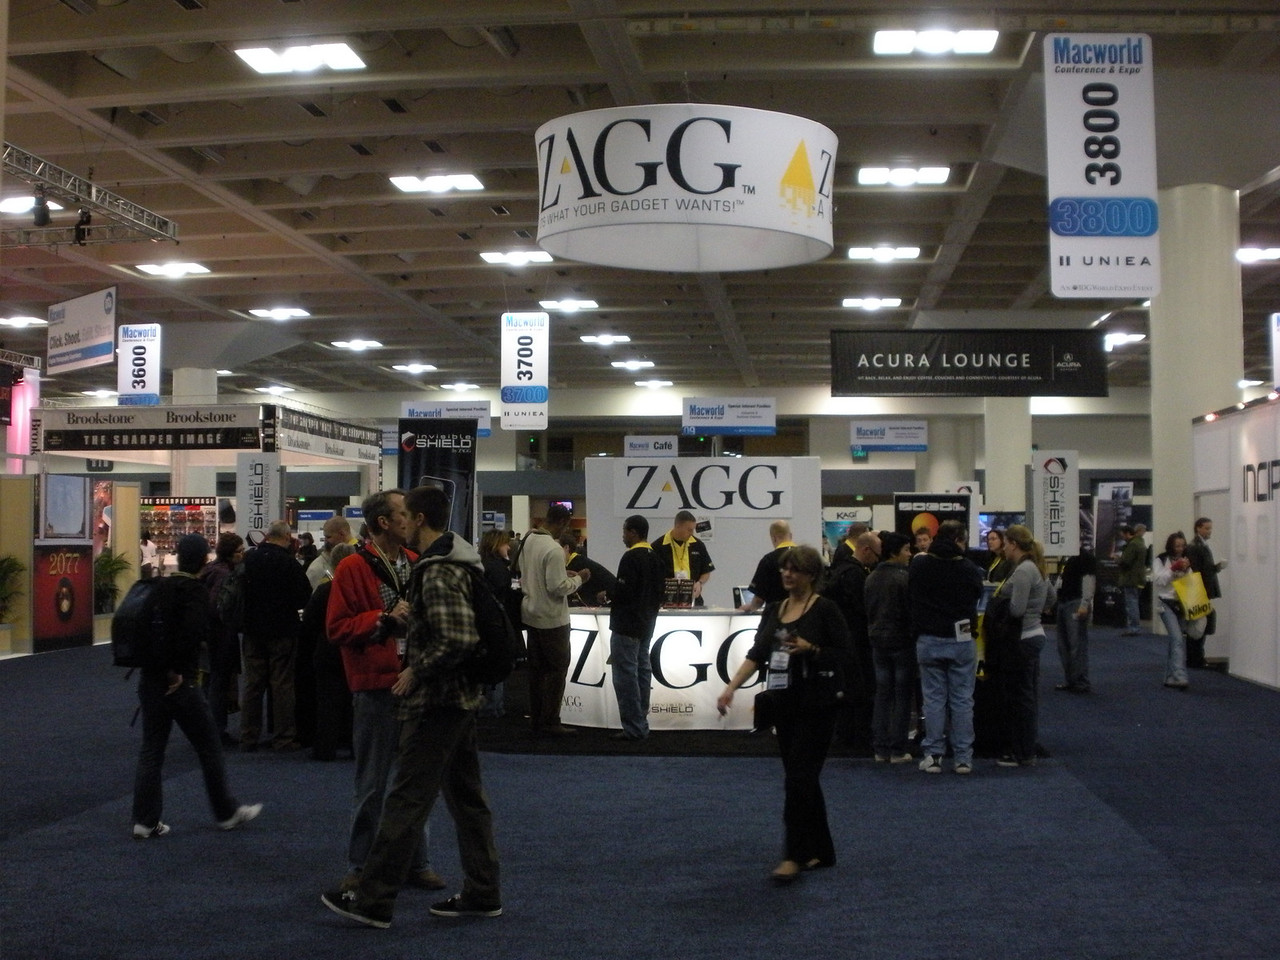 Zagg at Macworld 2009